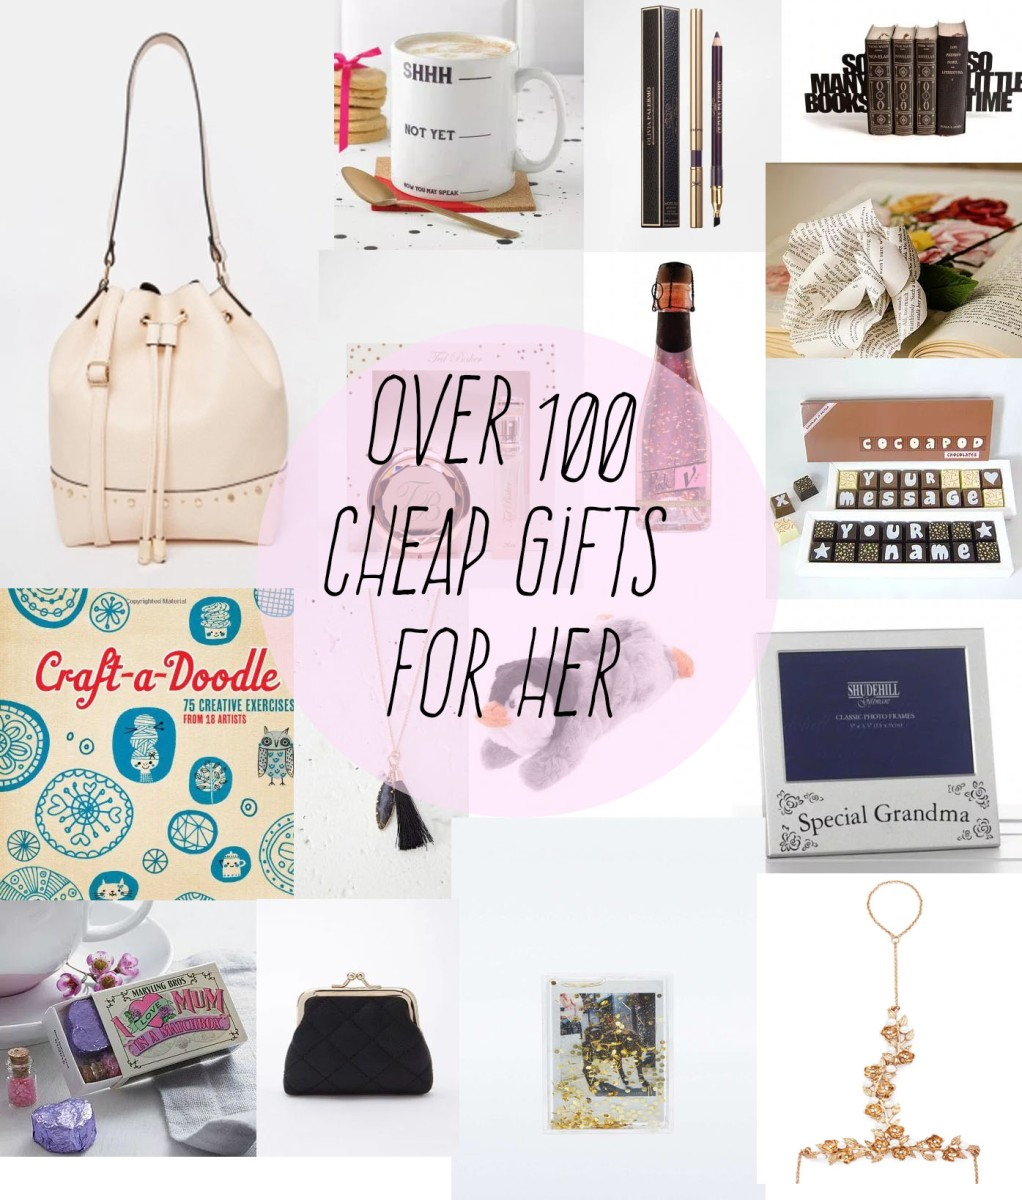 100 Cheap Gift Ideas For Her Under £20 - The 2015 Gift Guide